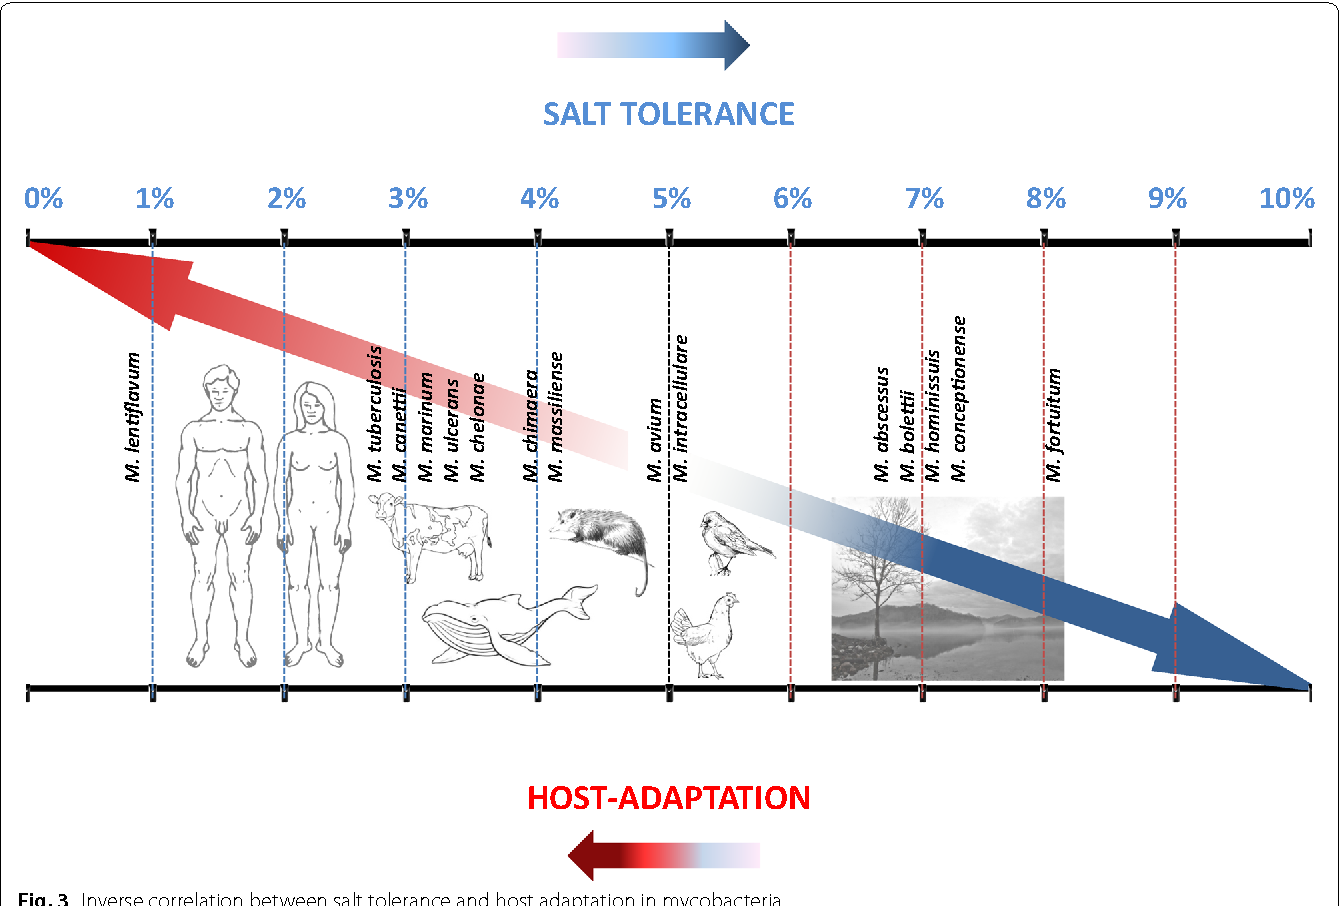 Fig. 3 Inverse correlation between salt tolerance and host adaptation in mycobacteria